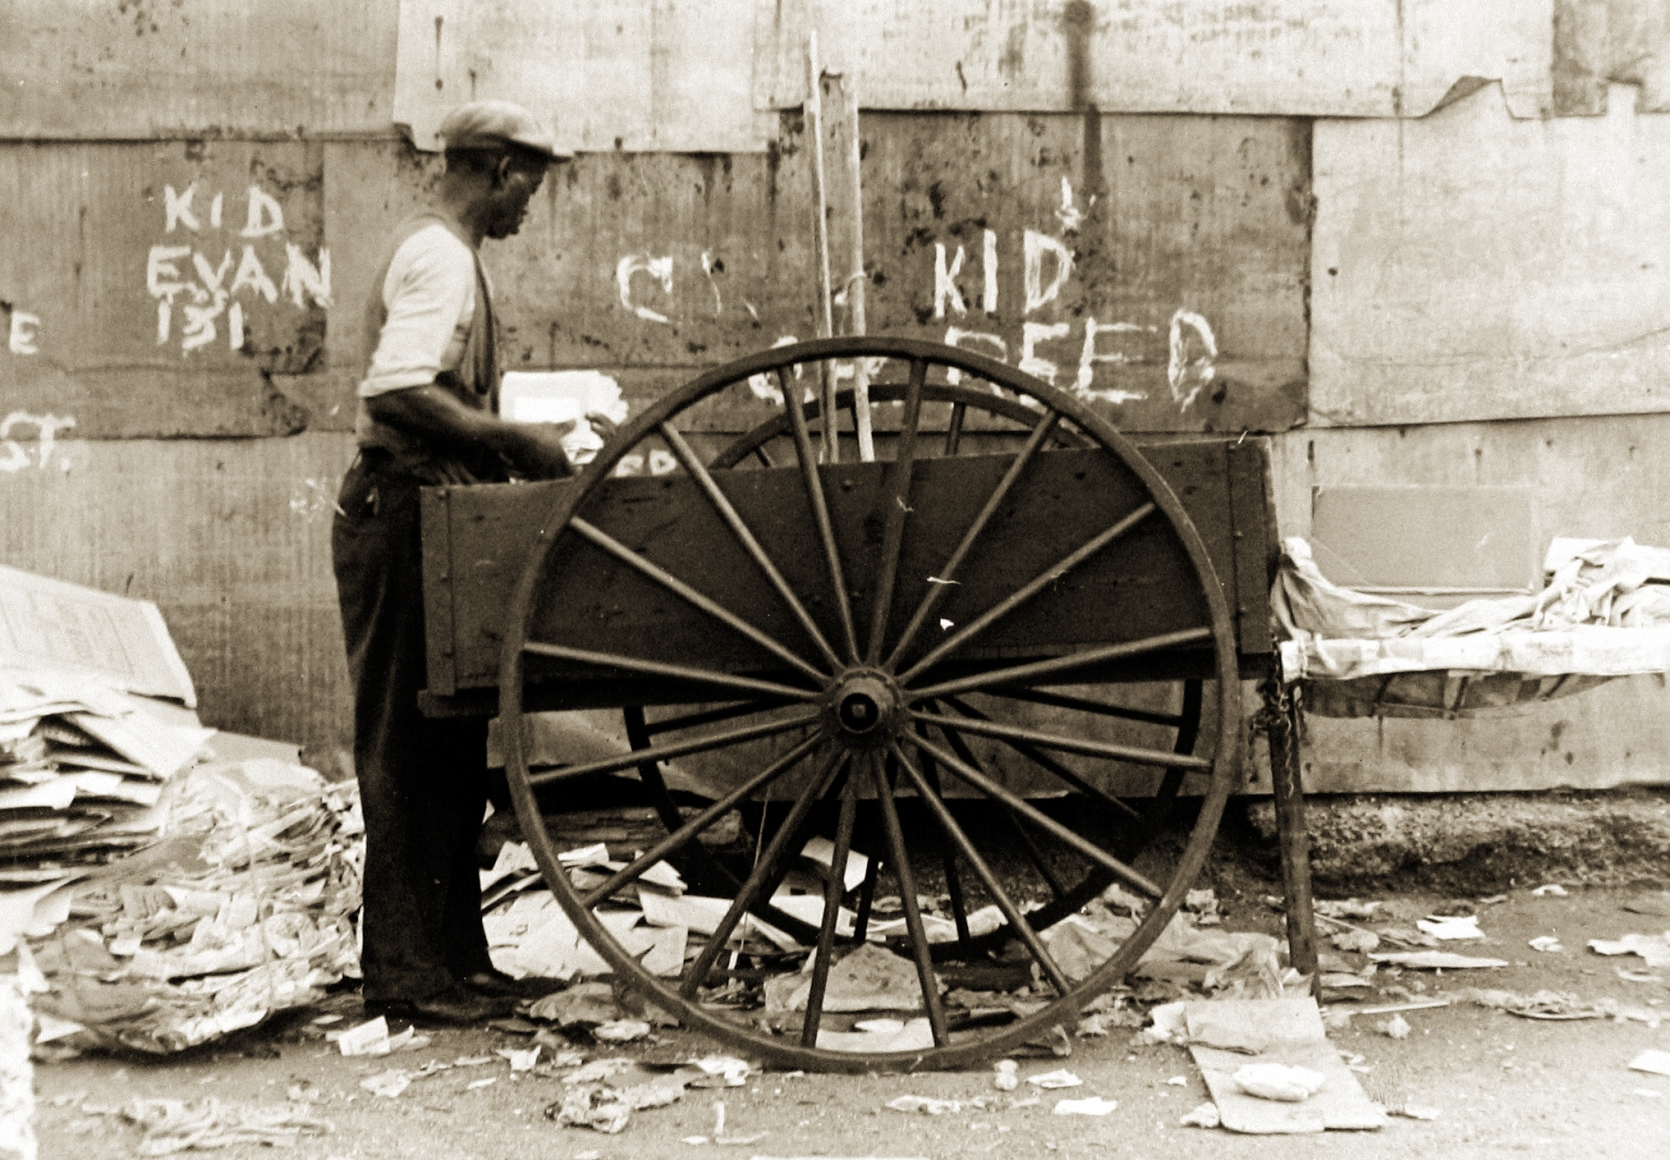 Ben Shahn  Pushcart for Paper, NY, 1932-35 Gelatin silver print; printed c.1932-35 6 5/8 x 9 1/2 inches, Howard Greenberg Gallery, 2020